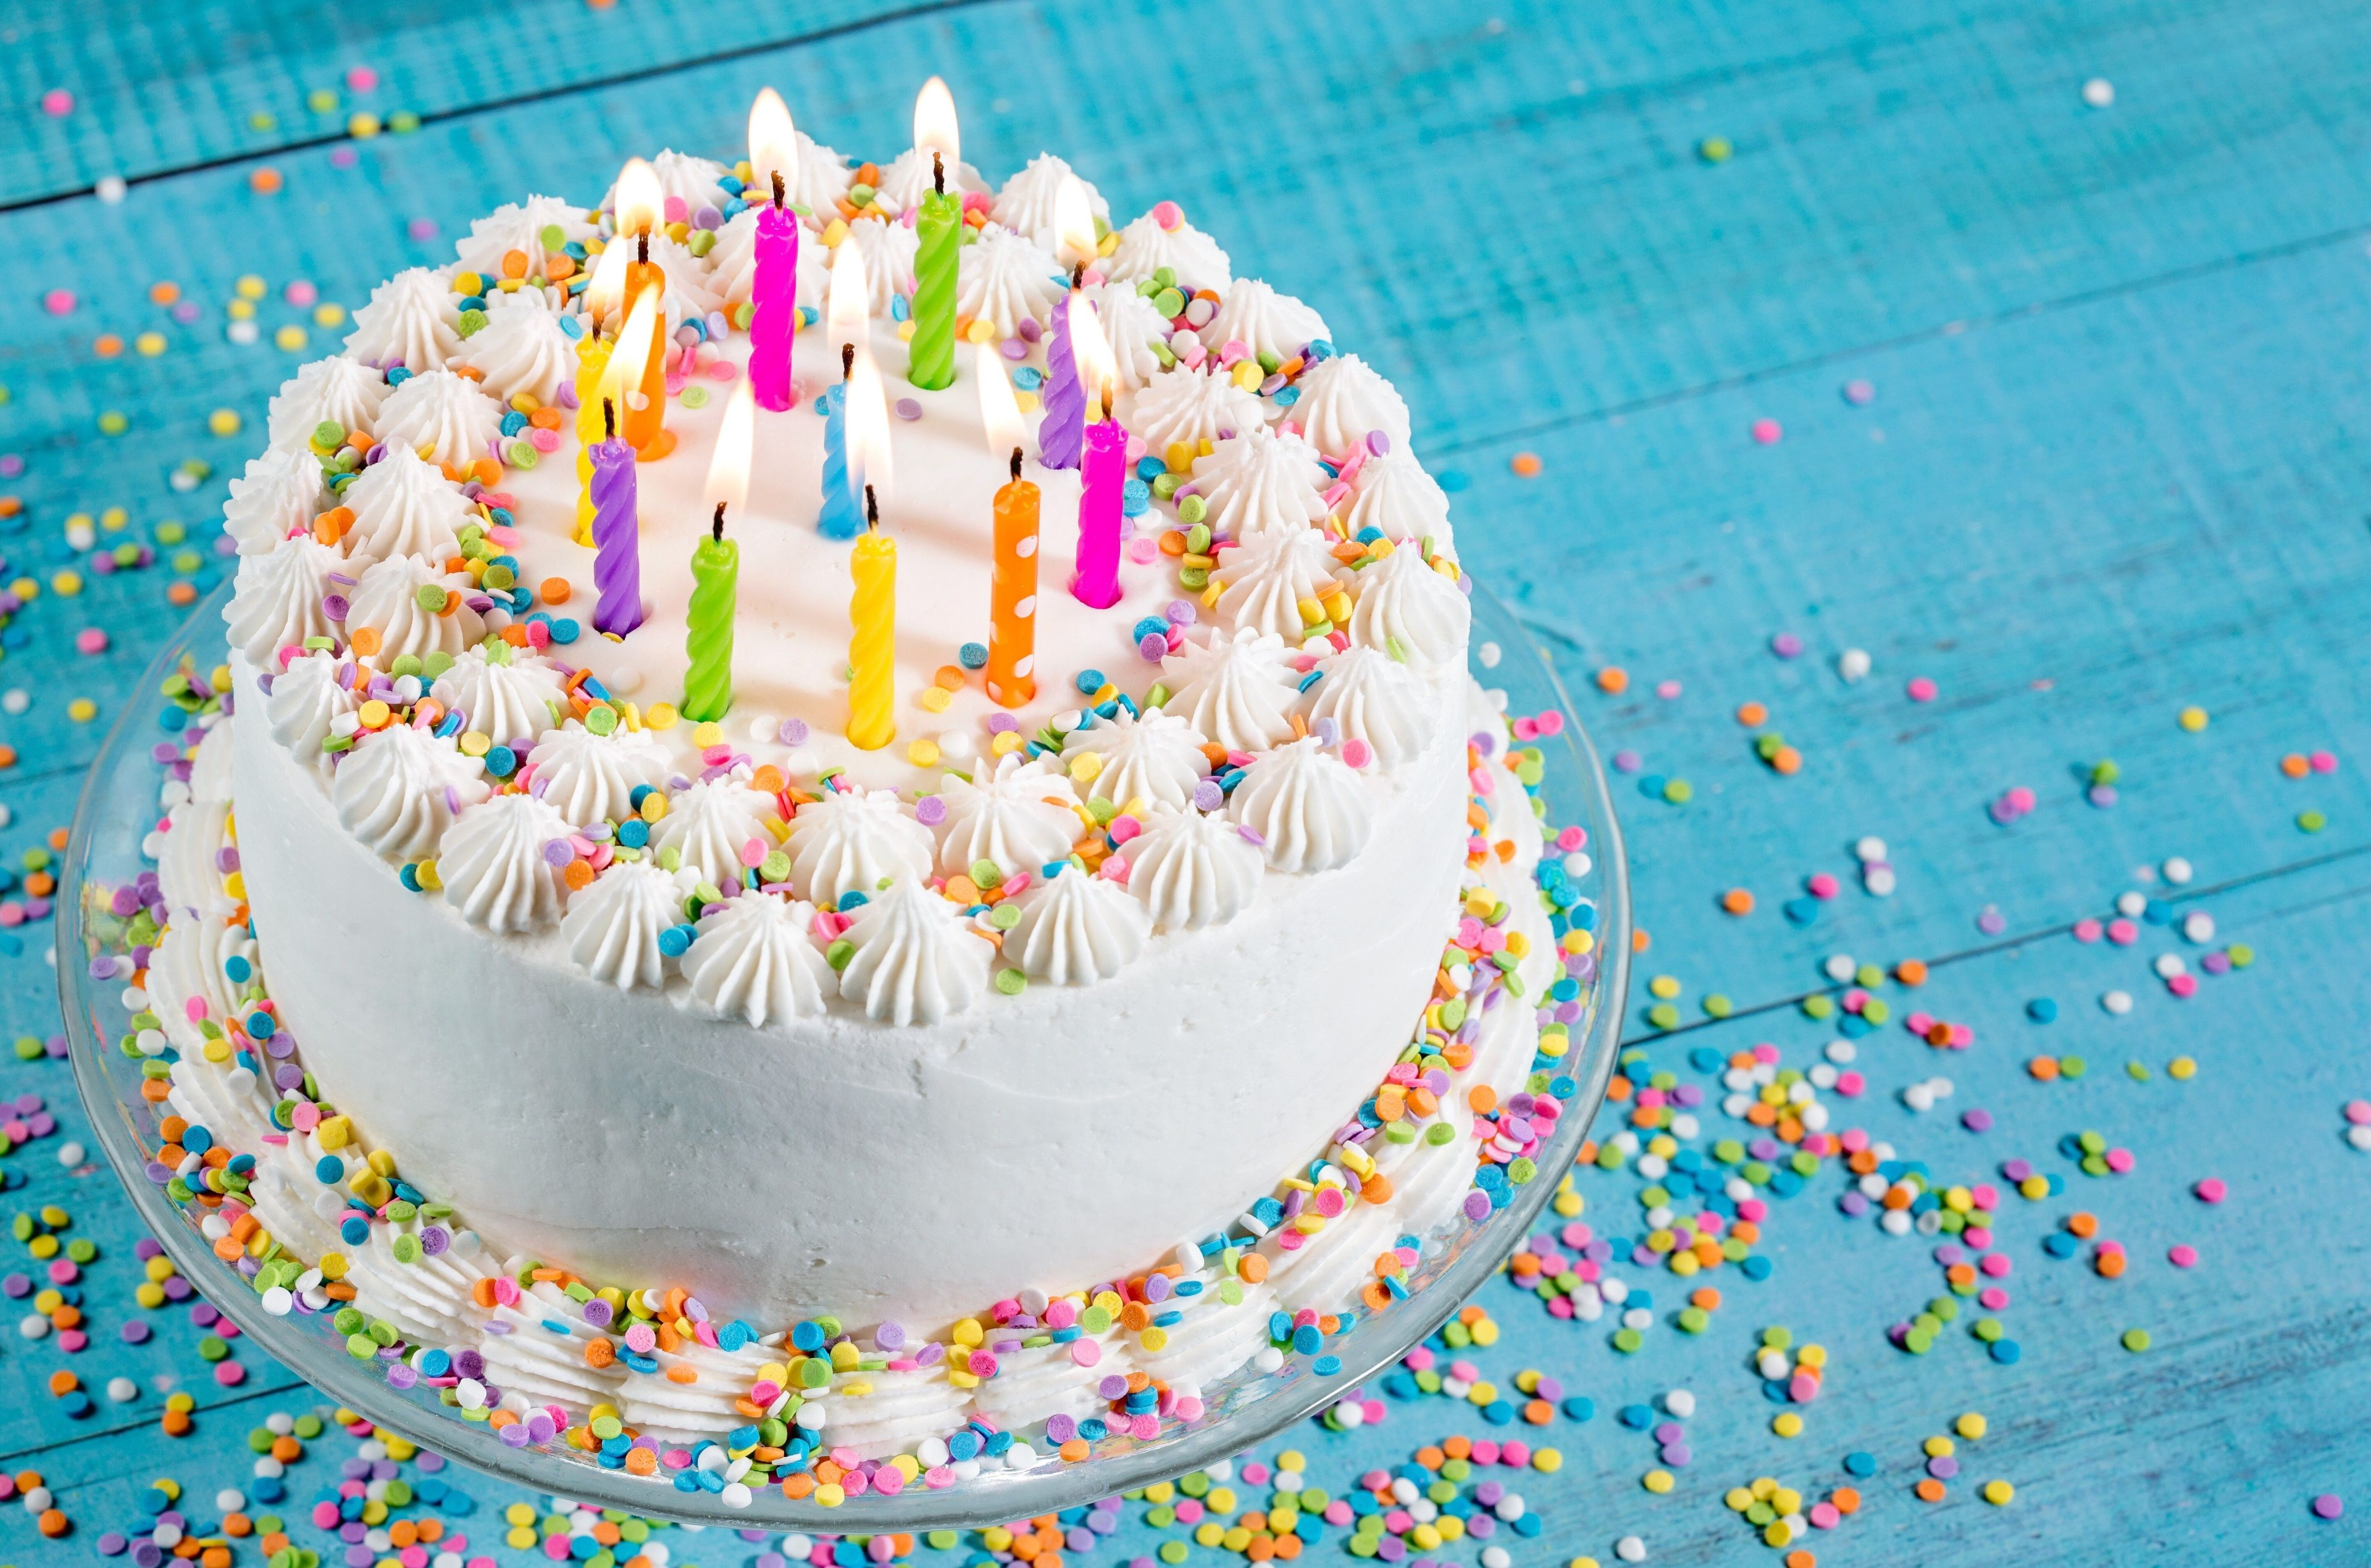 3840x2540 Birthday Cake 4k Hd Background Wallpaper Free Download Birthday Cakes For Teens Birthday Wishes Cake Birthday Cake With Candles